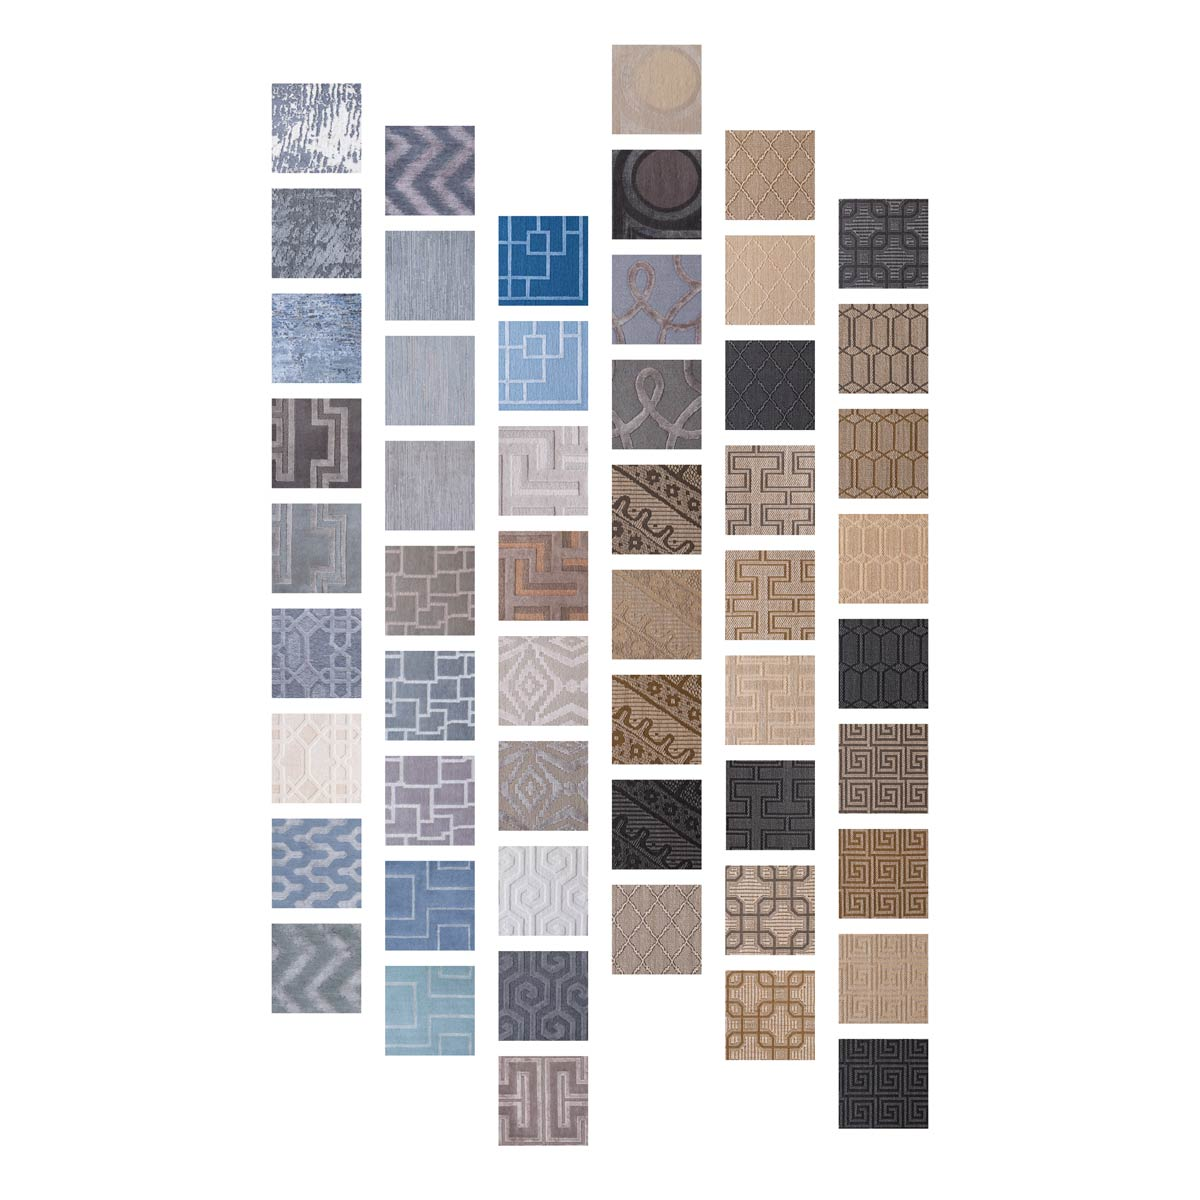 Rug swatches in mosaic pattern